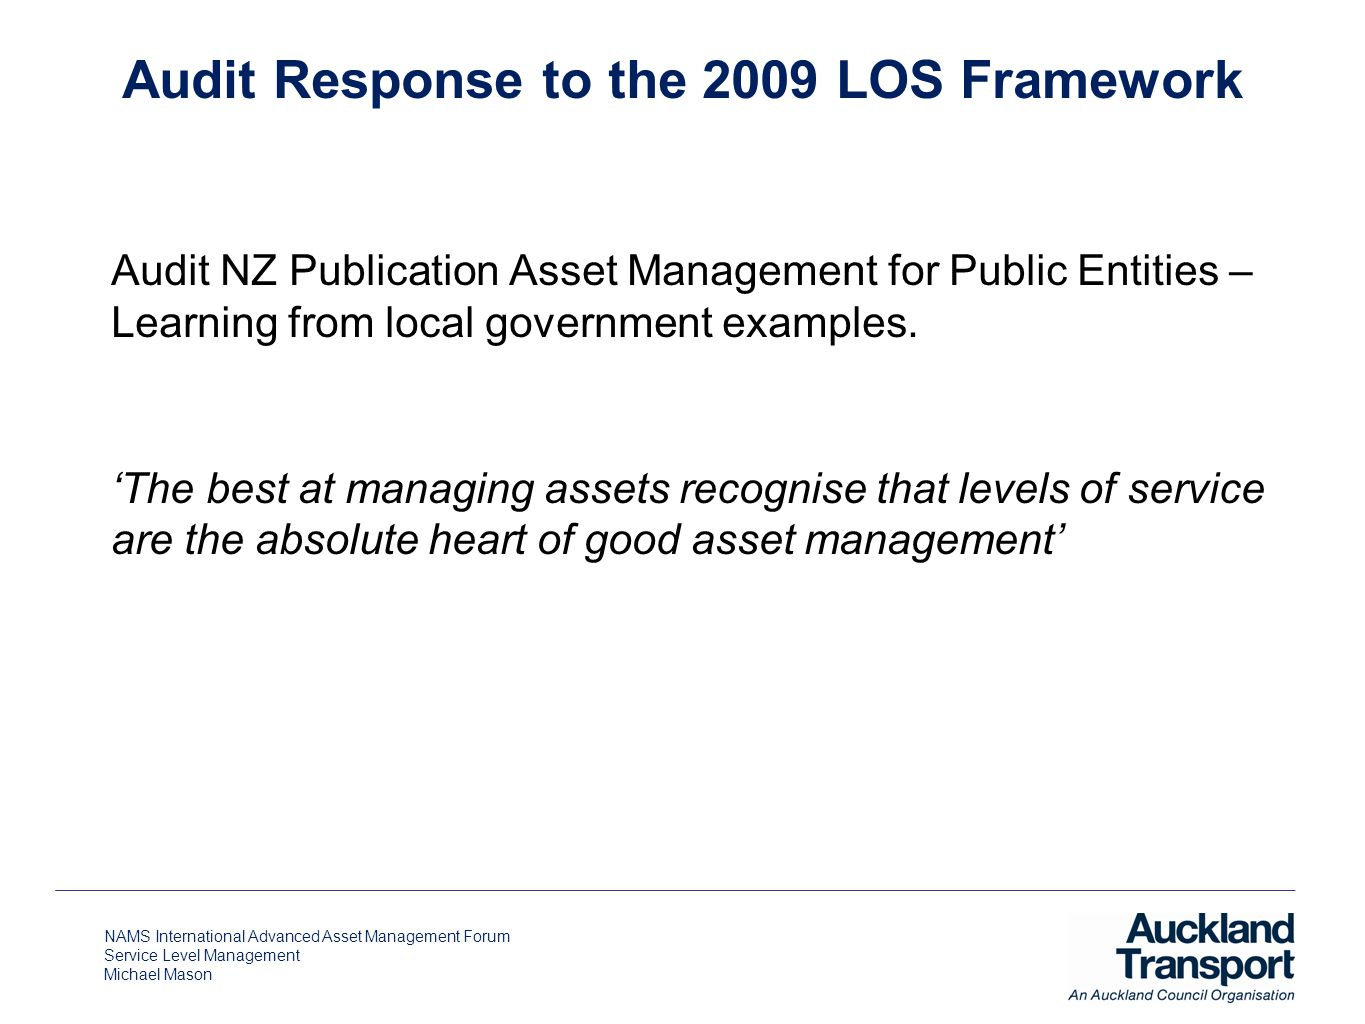 NAMS International Advanced Asset Management Forum Service Level Management Michael Mason Audit NZ Publication Asset Management for Public Entities – Learning from local government examples.